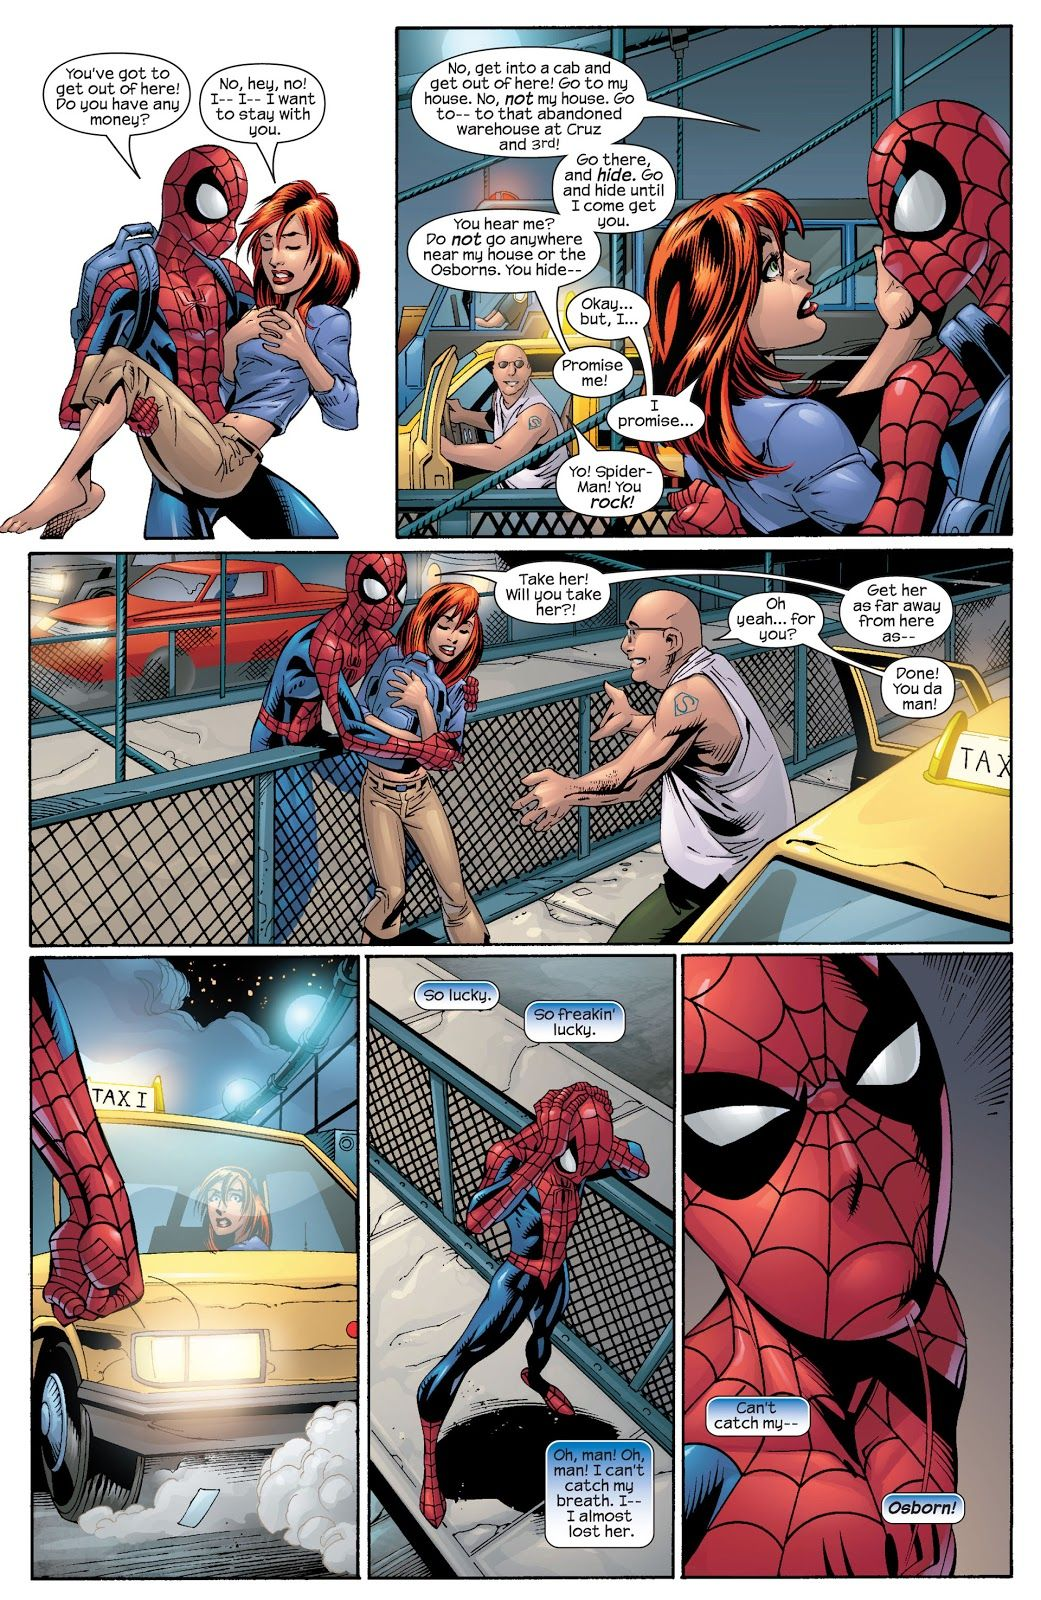 Ultimate Spider Man 2000 Issue 26 Read Ultimate Spider Man 2000 Issue 26 Comic Online In Spiderman Comic Marvel Ultimate Spider Man Ultimate Spiderman